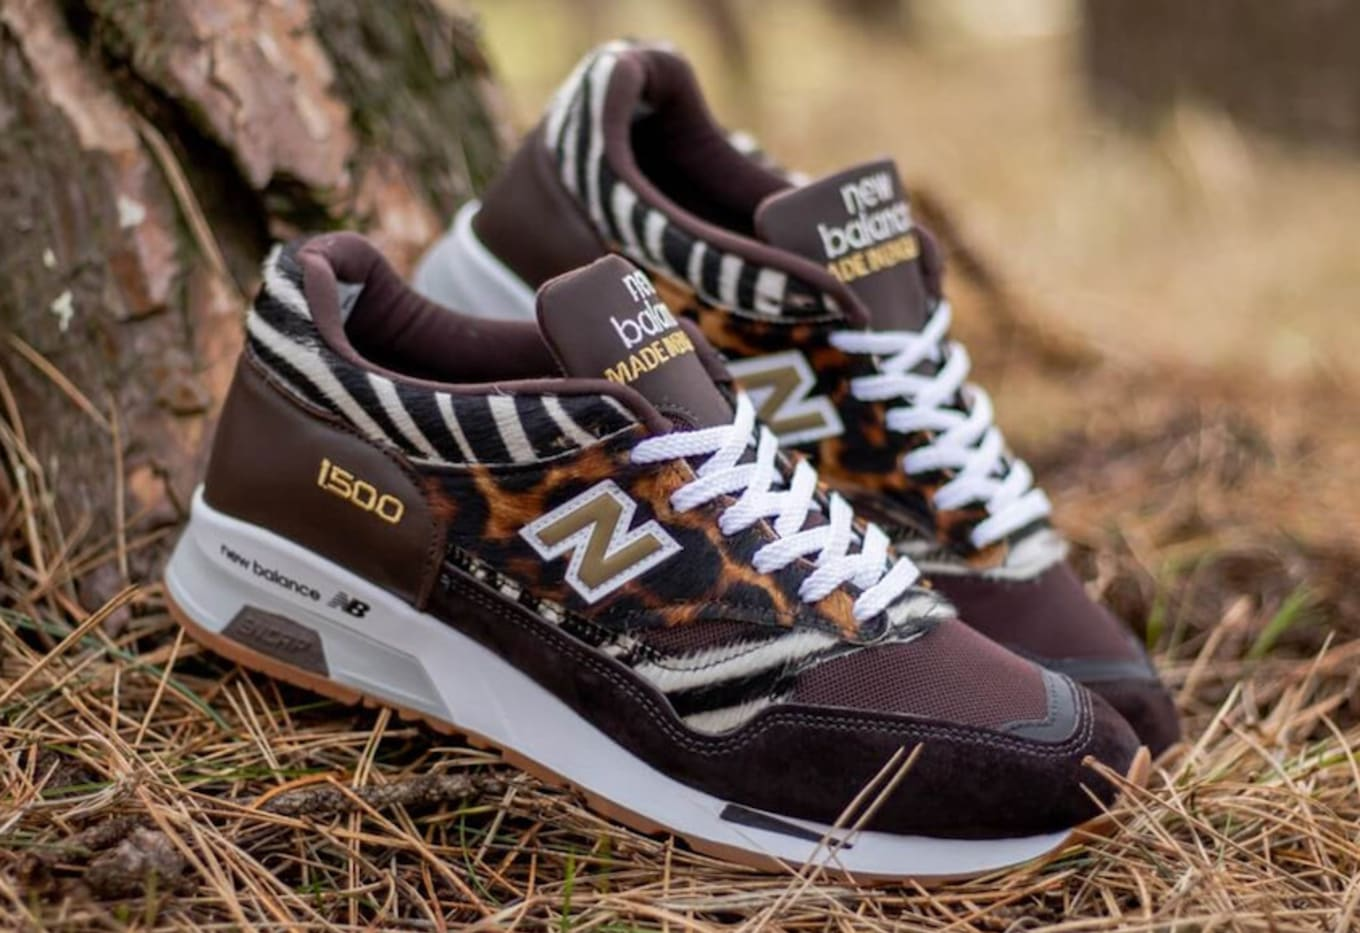 new balance 1500 fit true to size